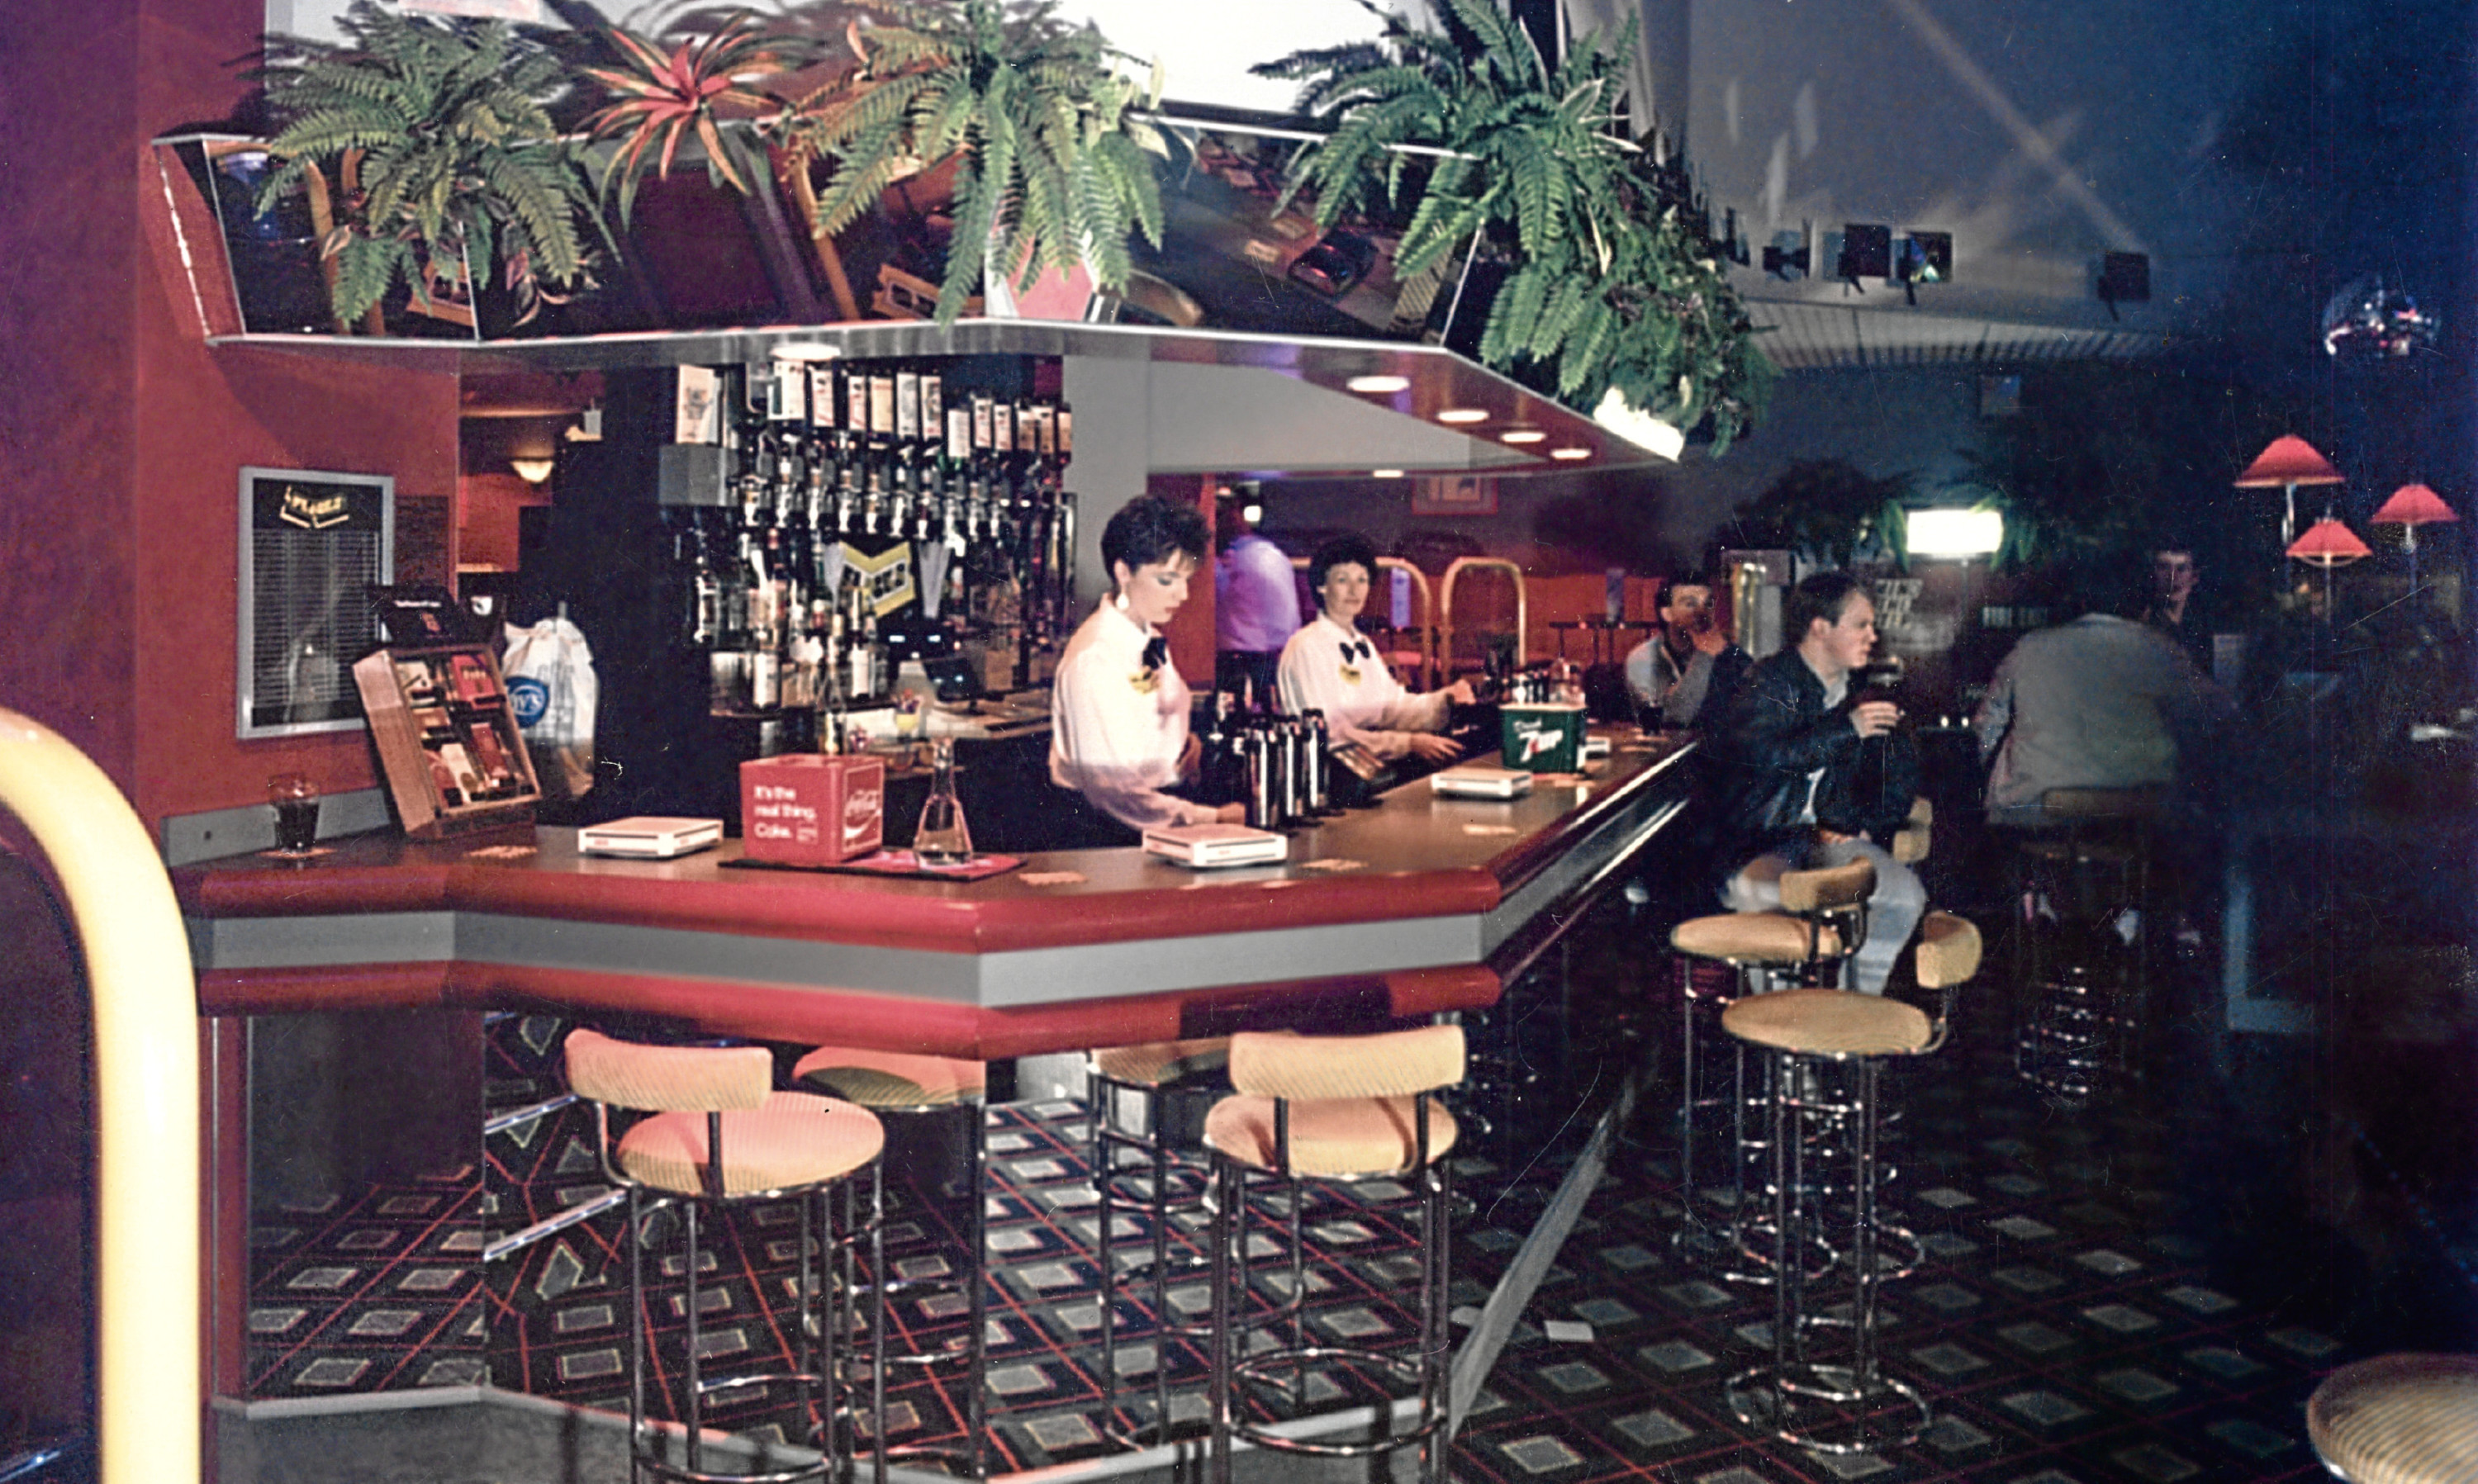 The interior of Flicks in its heyday